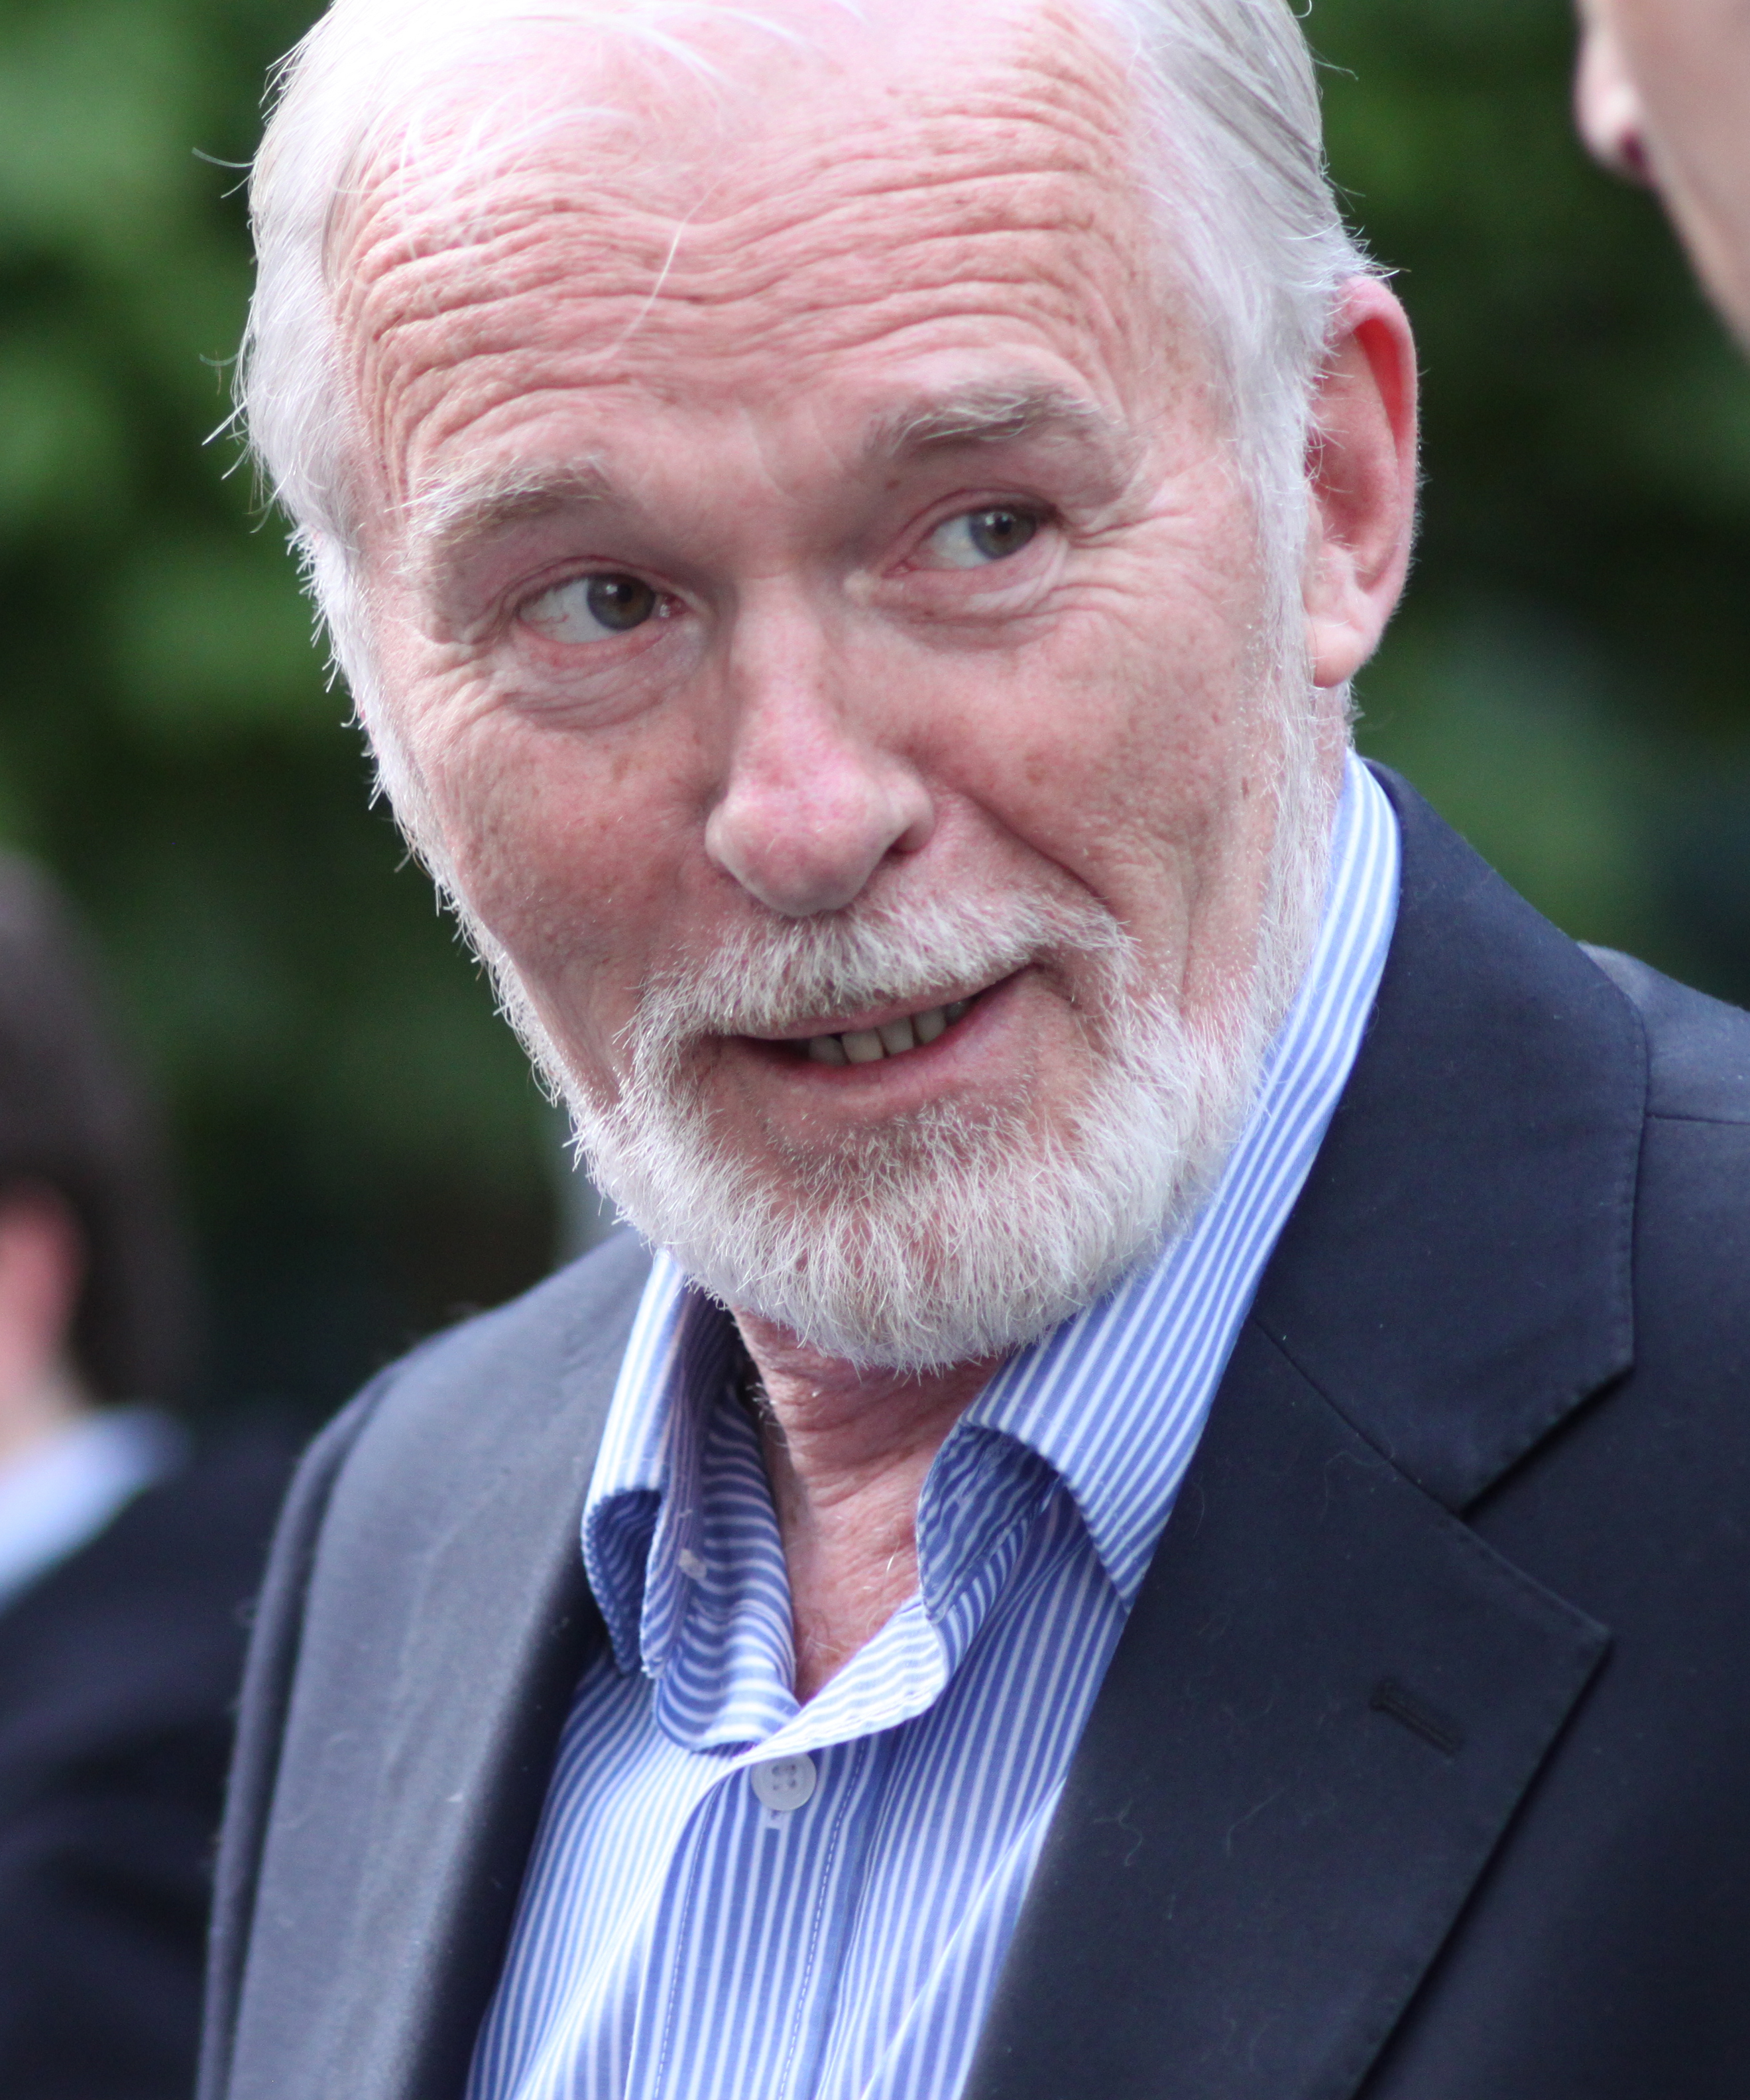 The 70-year old son of father (?) and mother(?) Ian McElhinney in 2018 photo. Ian McElhinney earned a  million dollar salary - leaving the net worth at 2 million in 2018